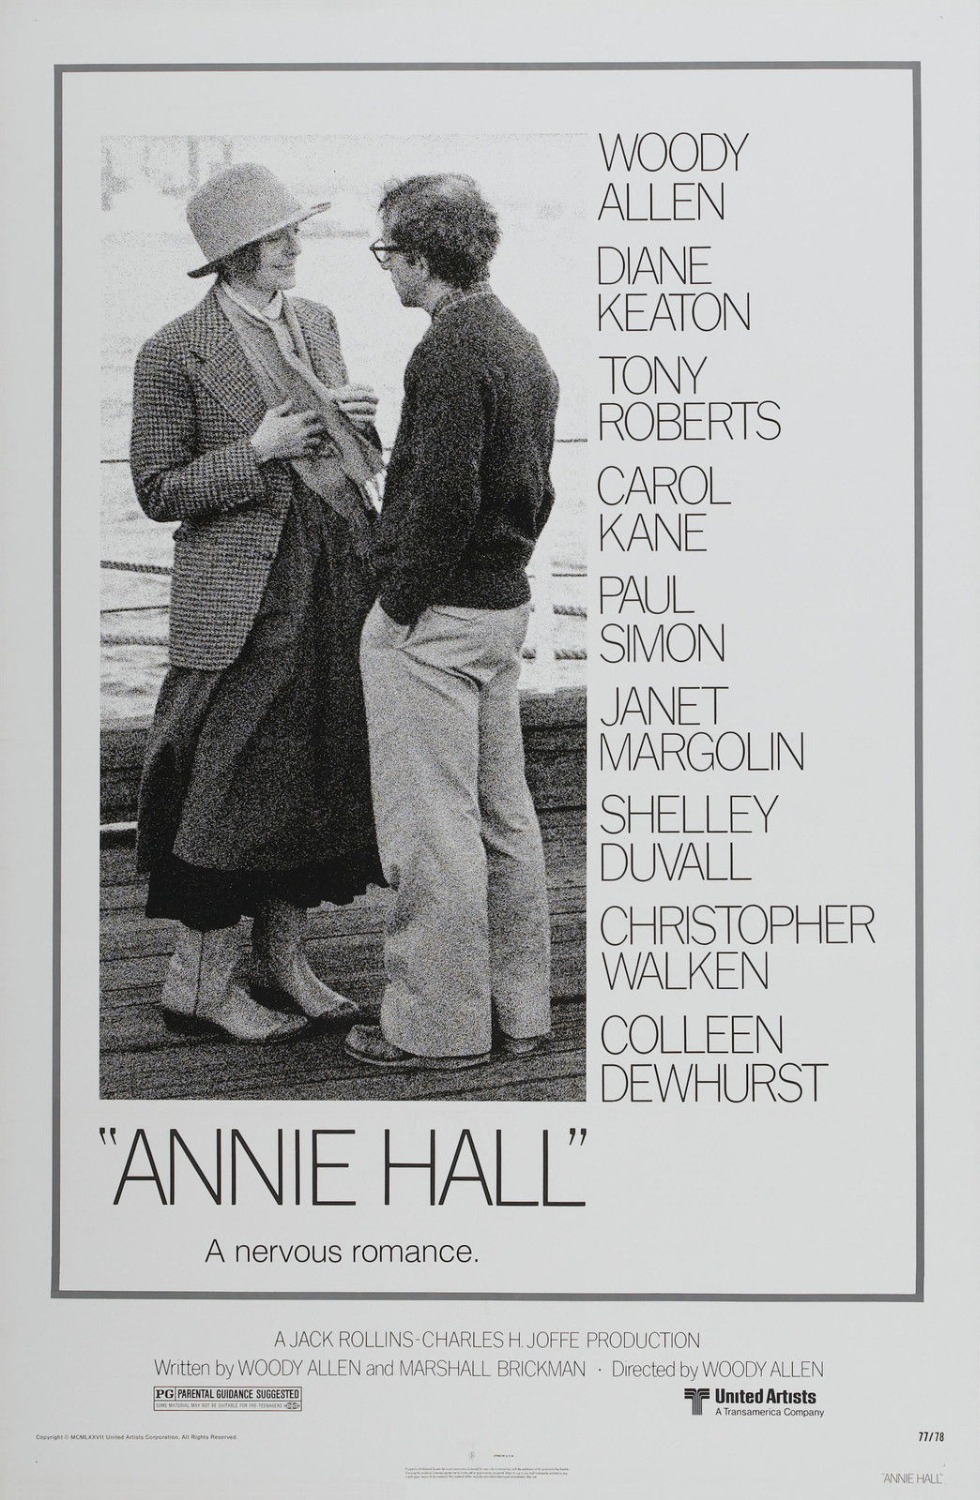 ANNIE HALL Movie Poster 1977 Woody Allen SILK POSTER Decorative painting 24x36inch image